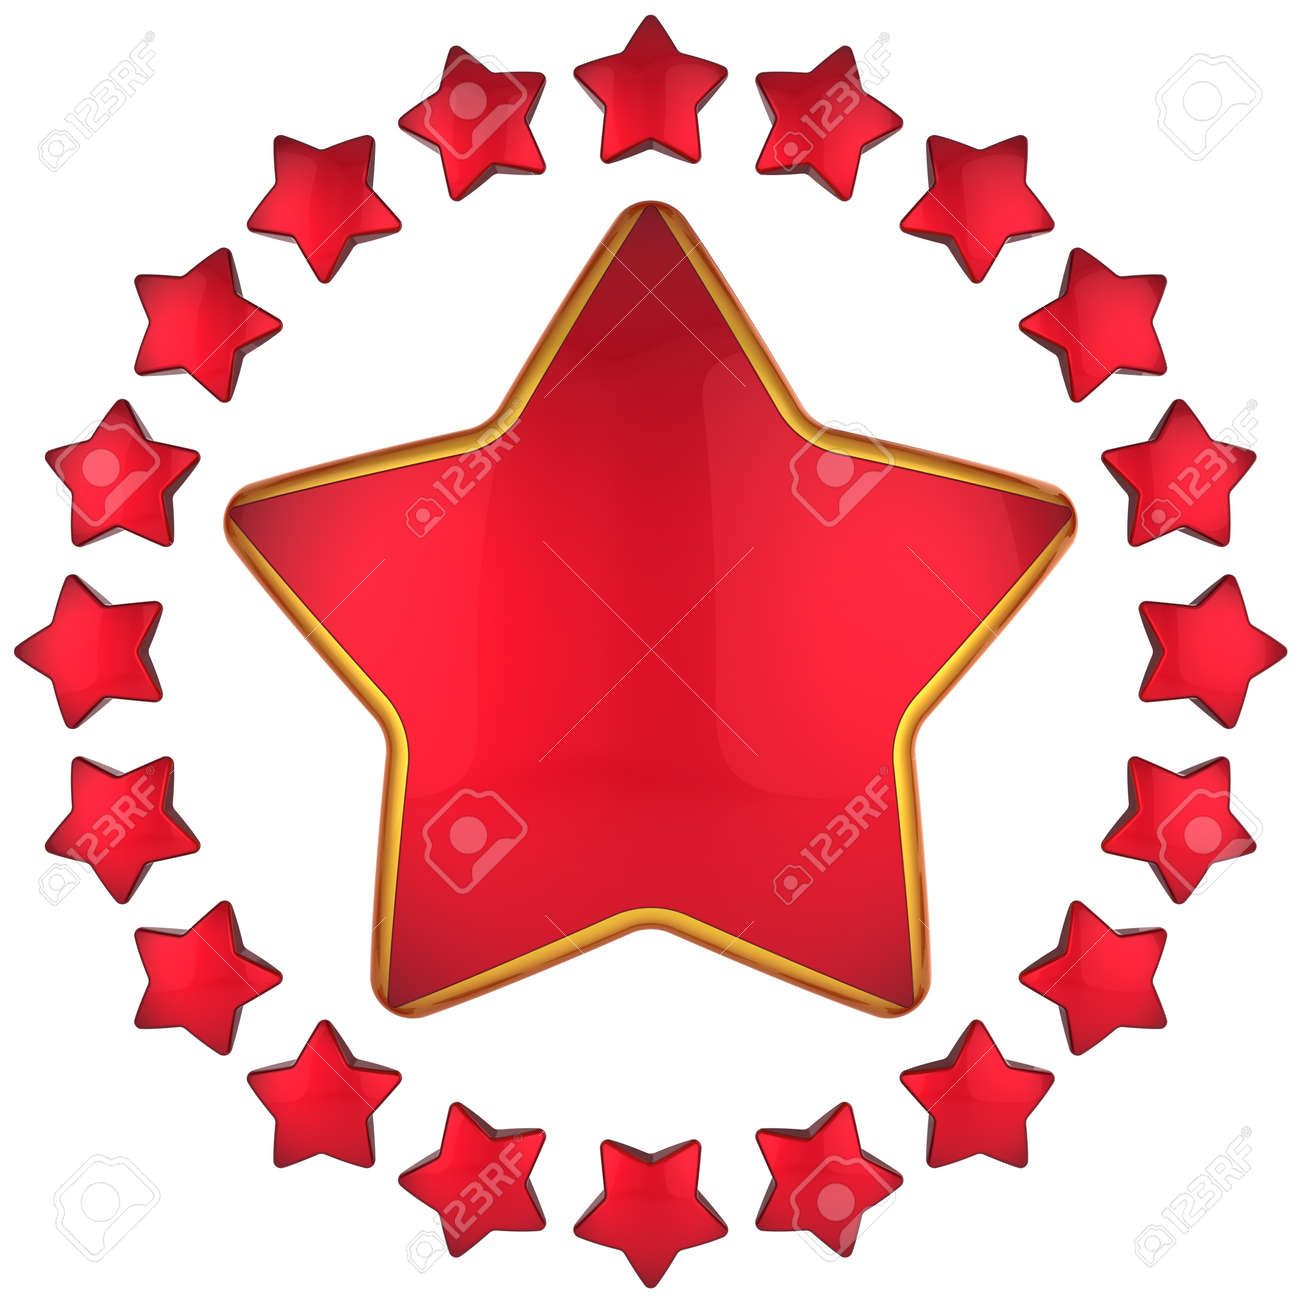 Red star shape bauble with many little stars arranged as circle border around. 3D render Stock Photo - 8375075